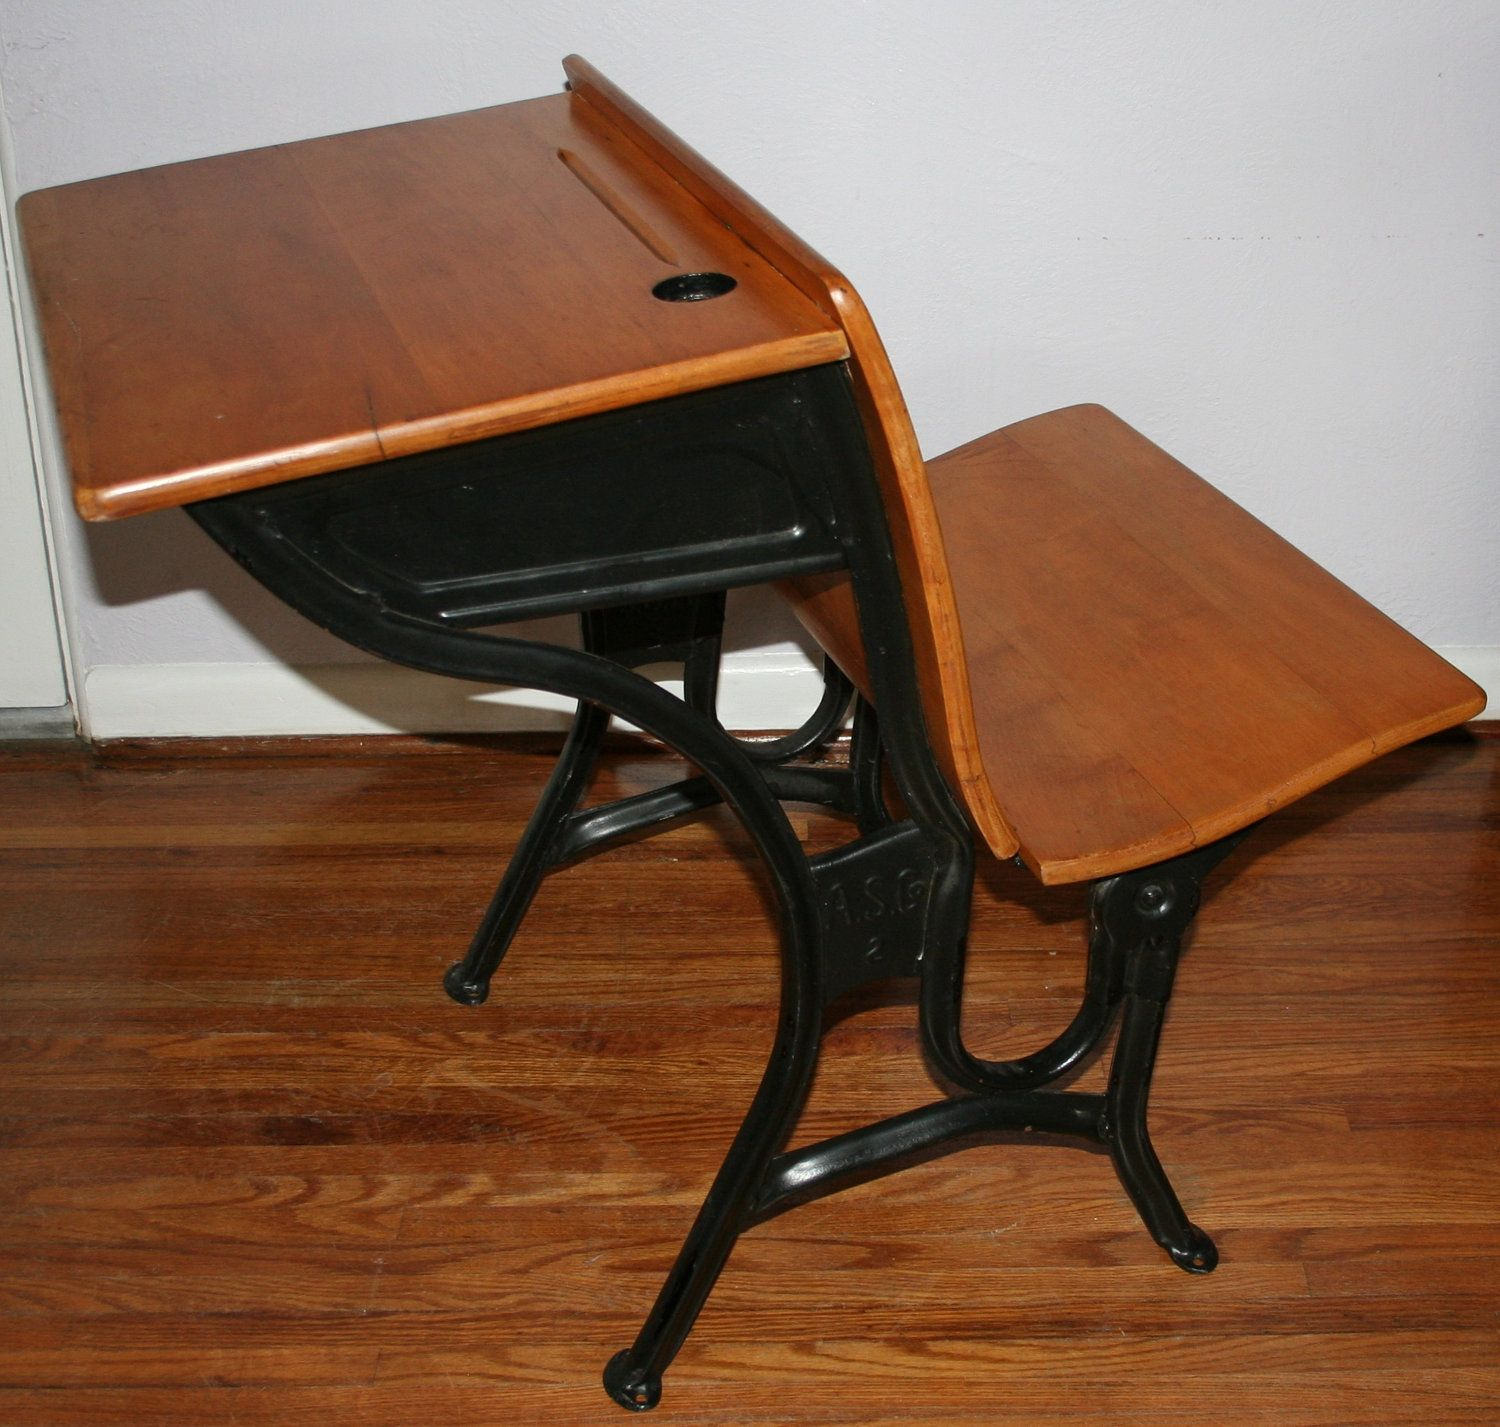 Vintage Antique Children S 1920s Wood Iron Old Fashion School Desk Marked A S Co 2 With Ink Well 140 Vintage School Desk Antique School Desk School Desks